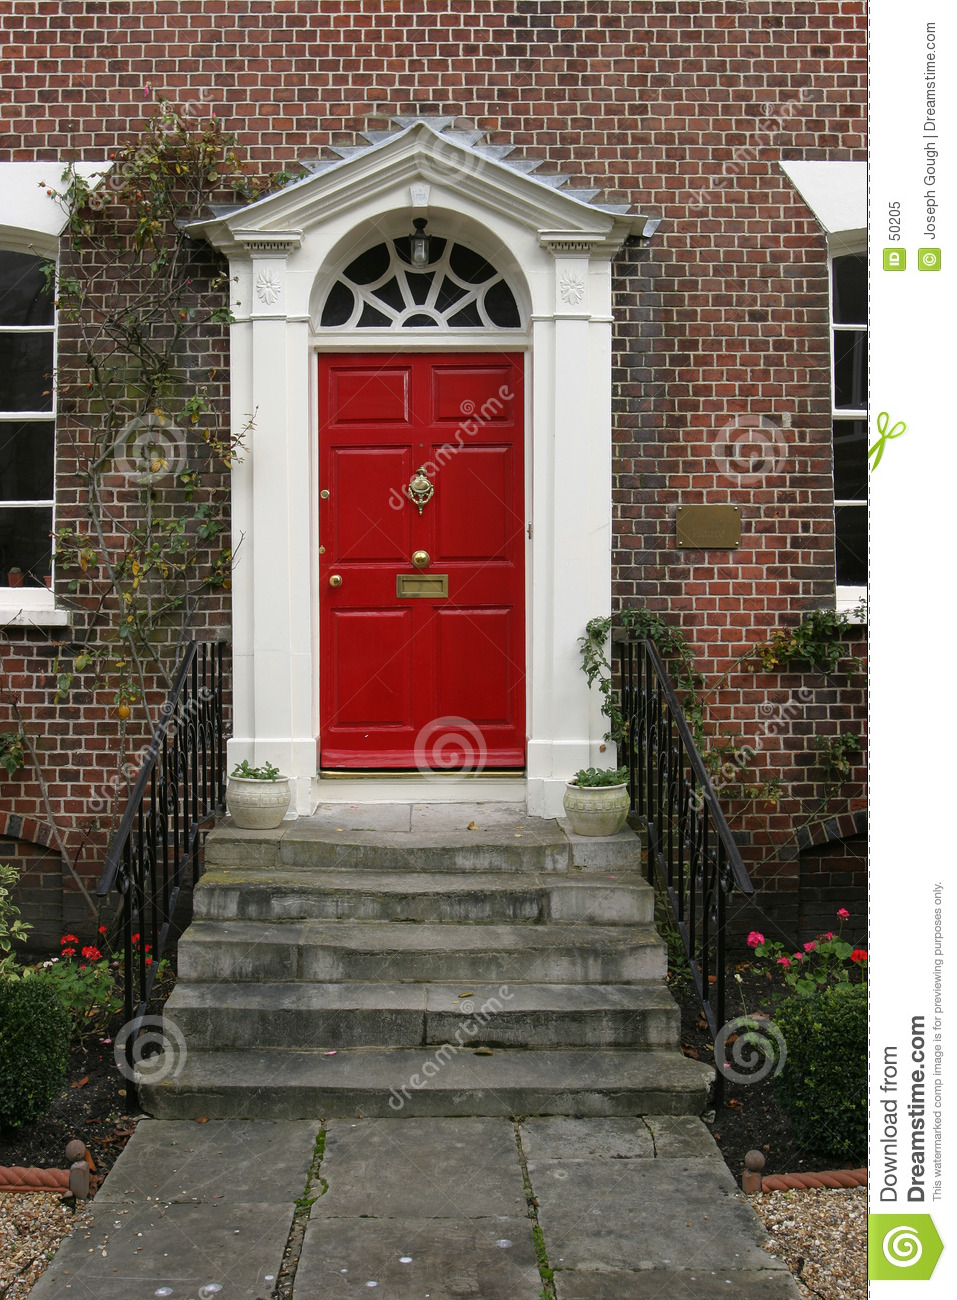 Georgian House Door Exterior & Georgian House Door Exterior Stock Image - Image of steps brass: 50205